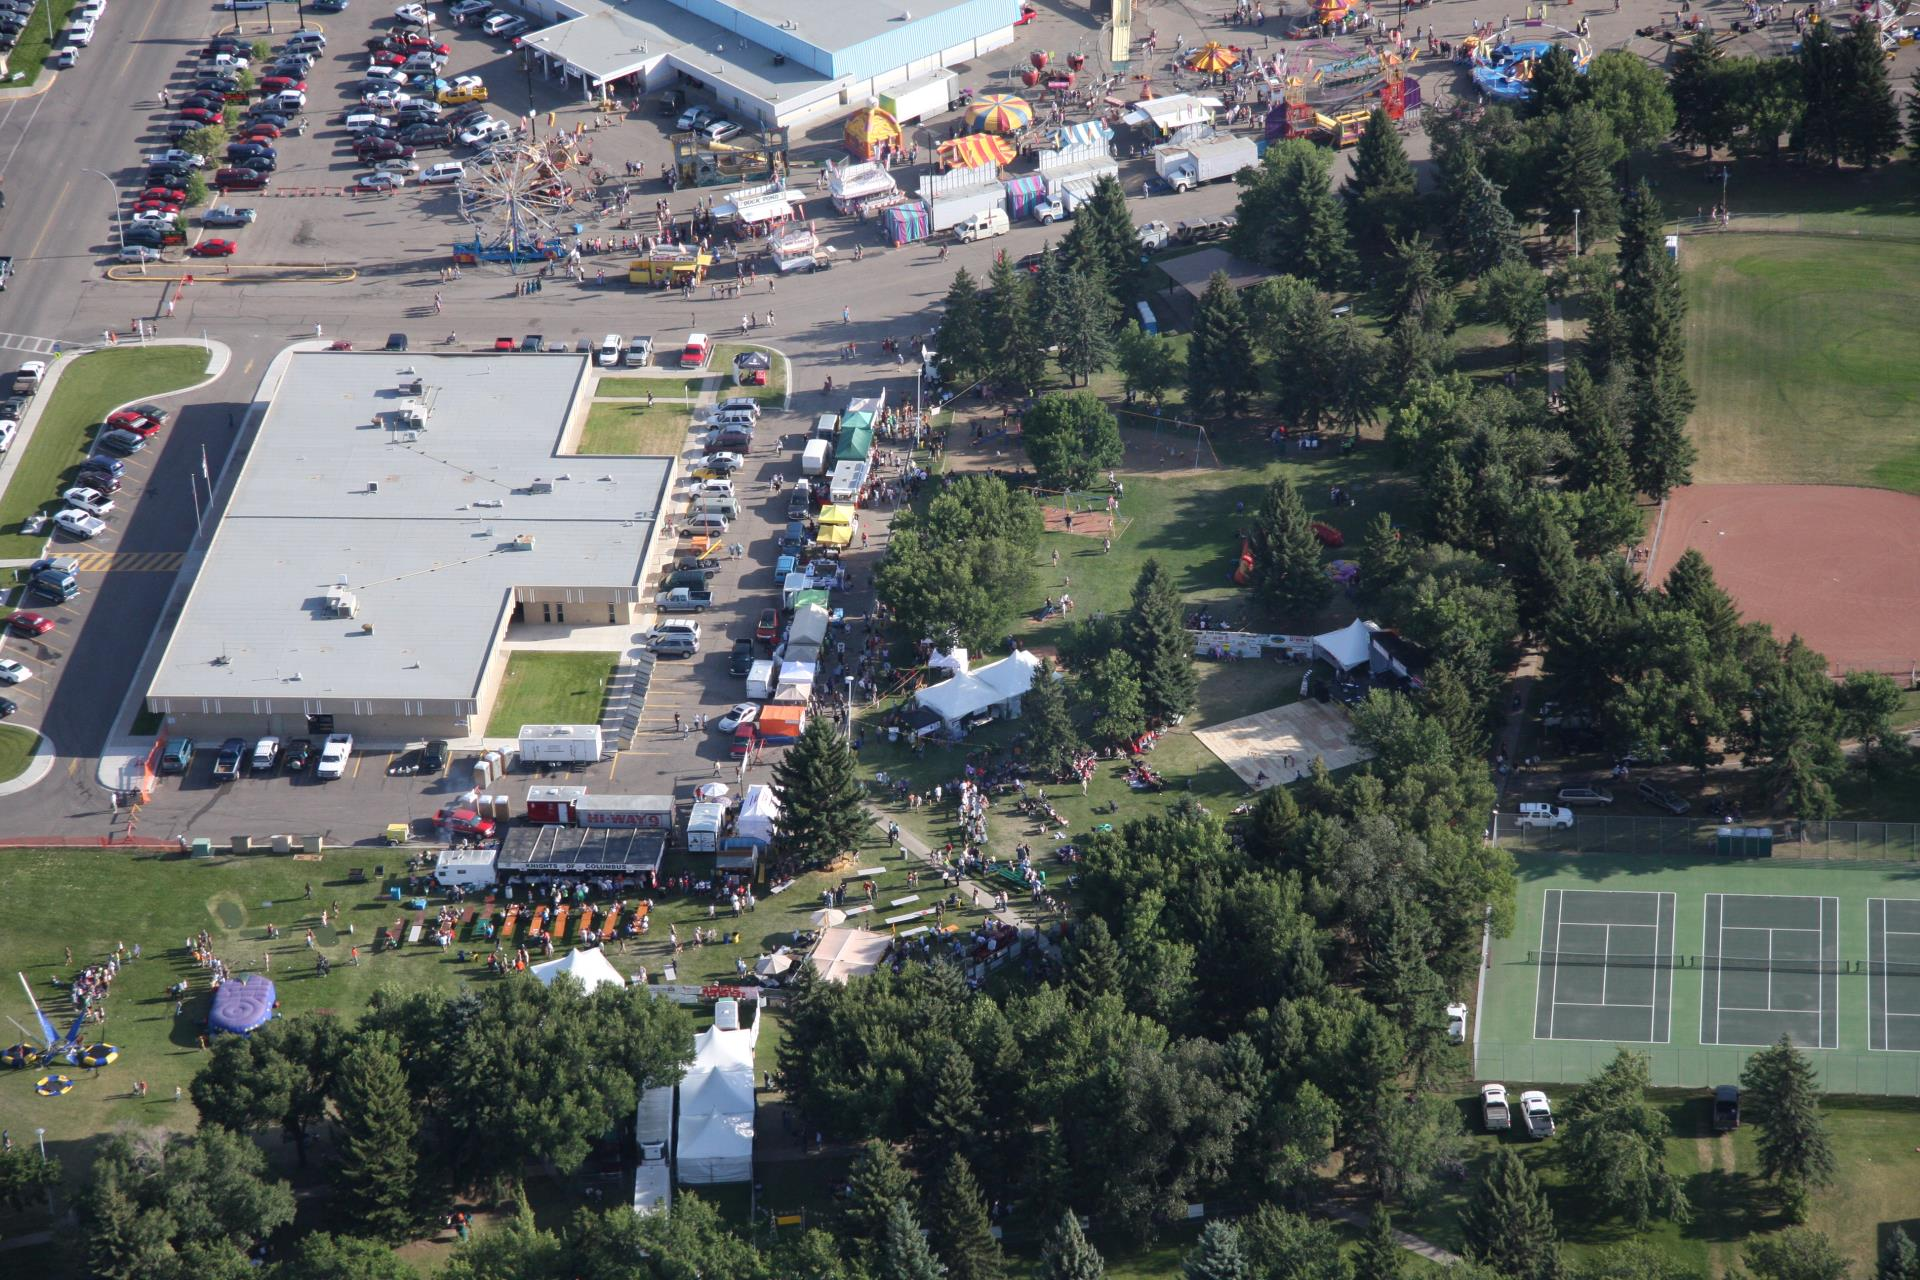 Busy Aerial View of Cornfest